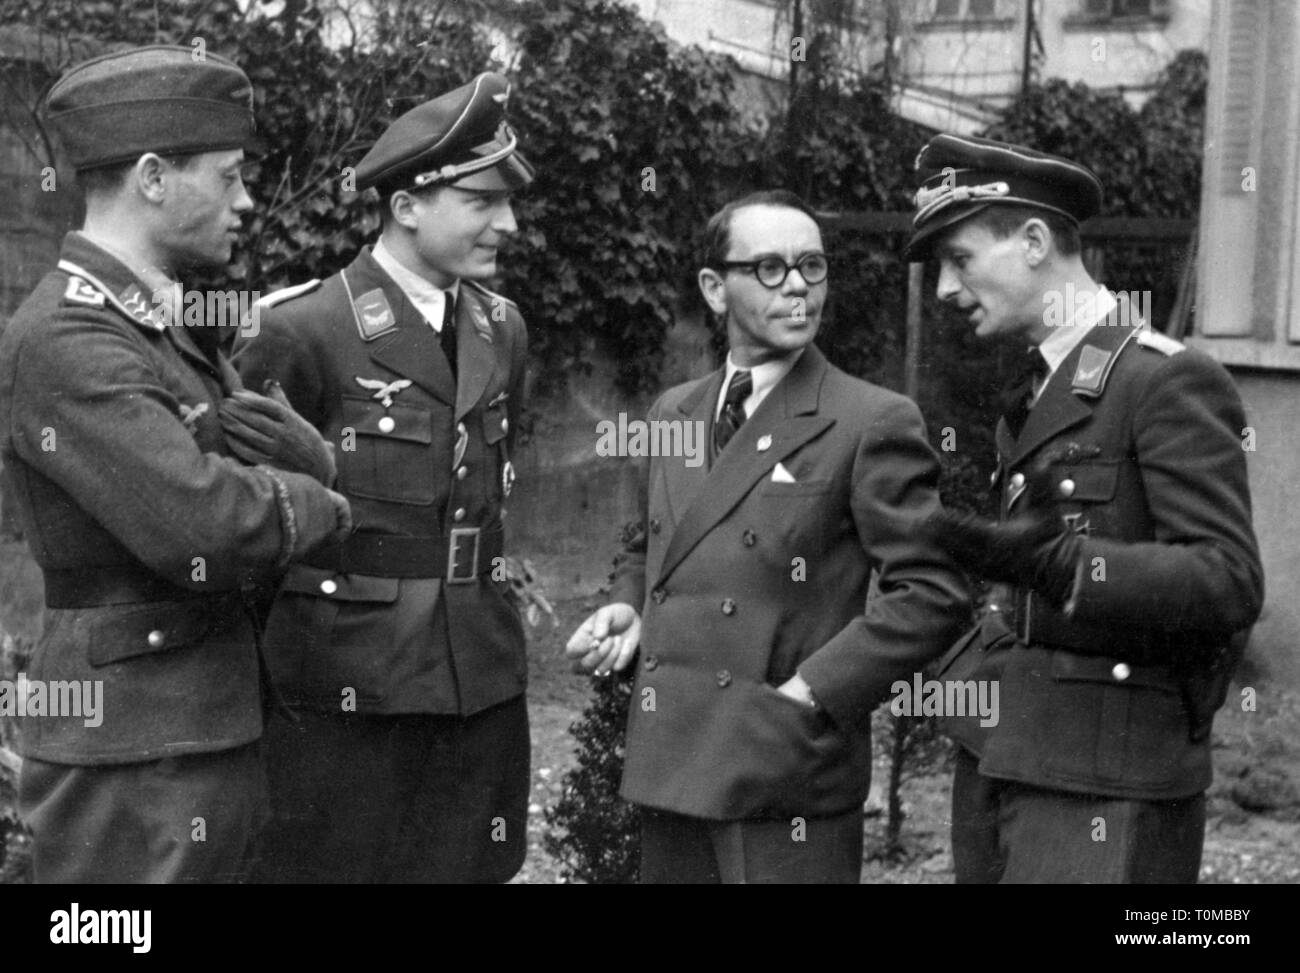 Second World War / WWII, aerial warfare, pilots of the German Luftwaffe (German Air Force) and a civilian, Paris, March 1943, Additional-Rights-Clearance-Info-Not-Available - Stock Image